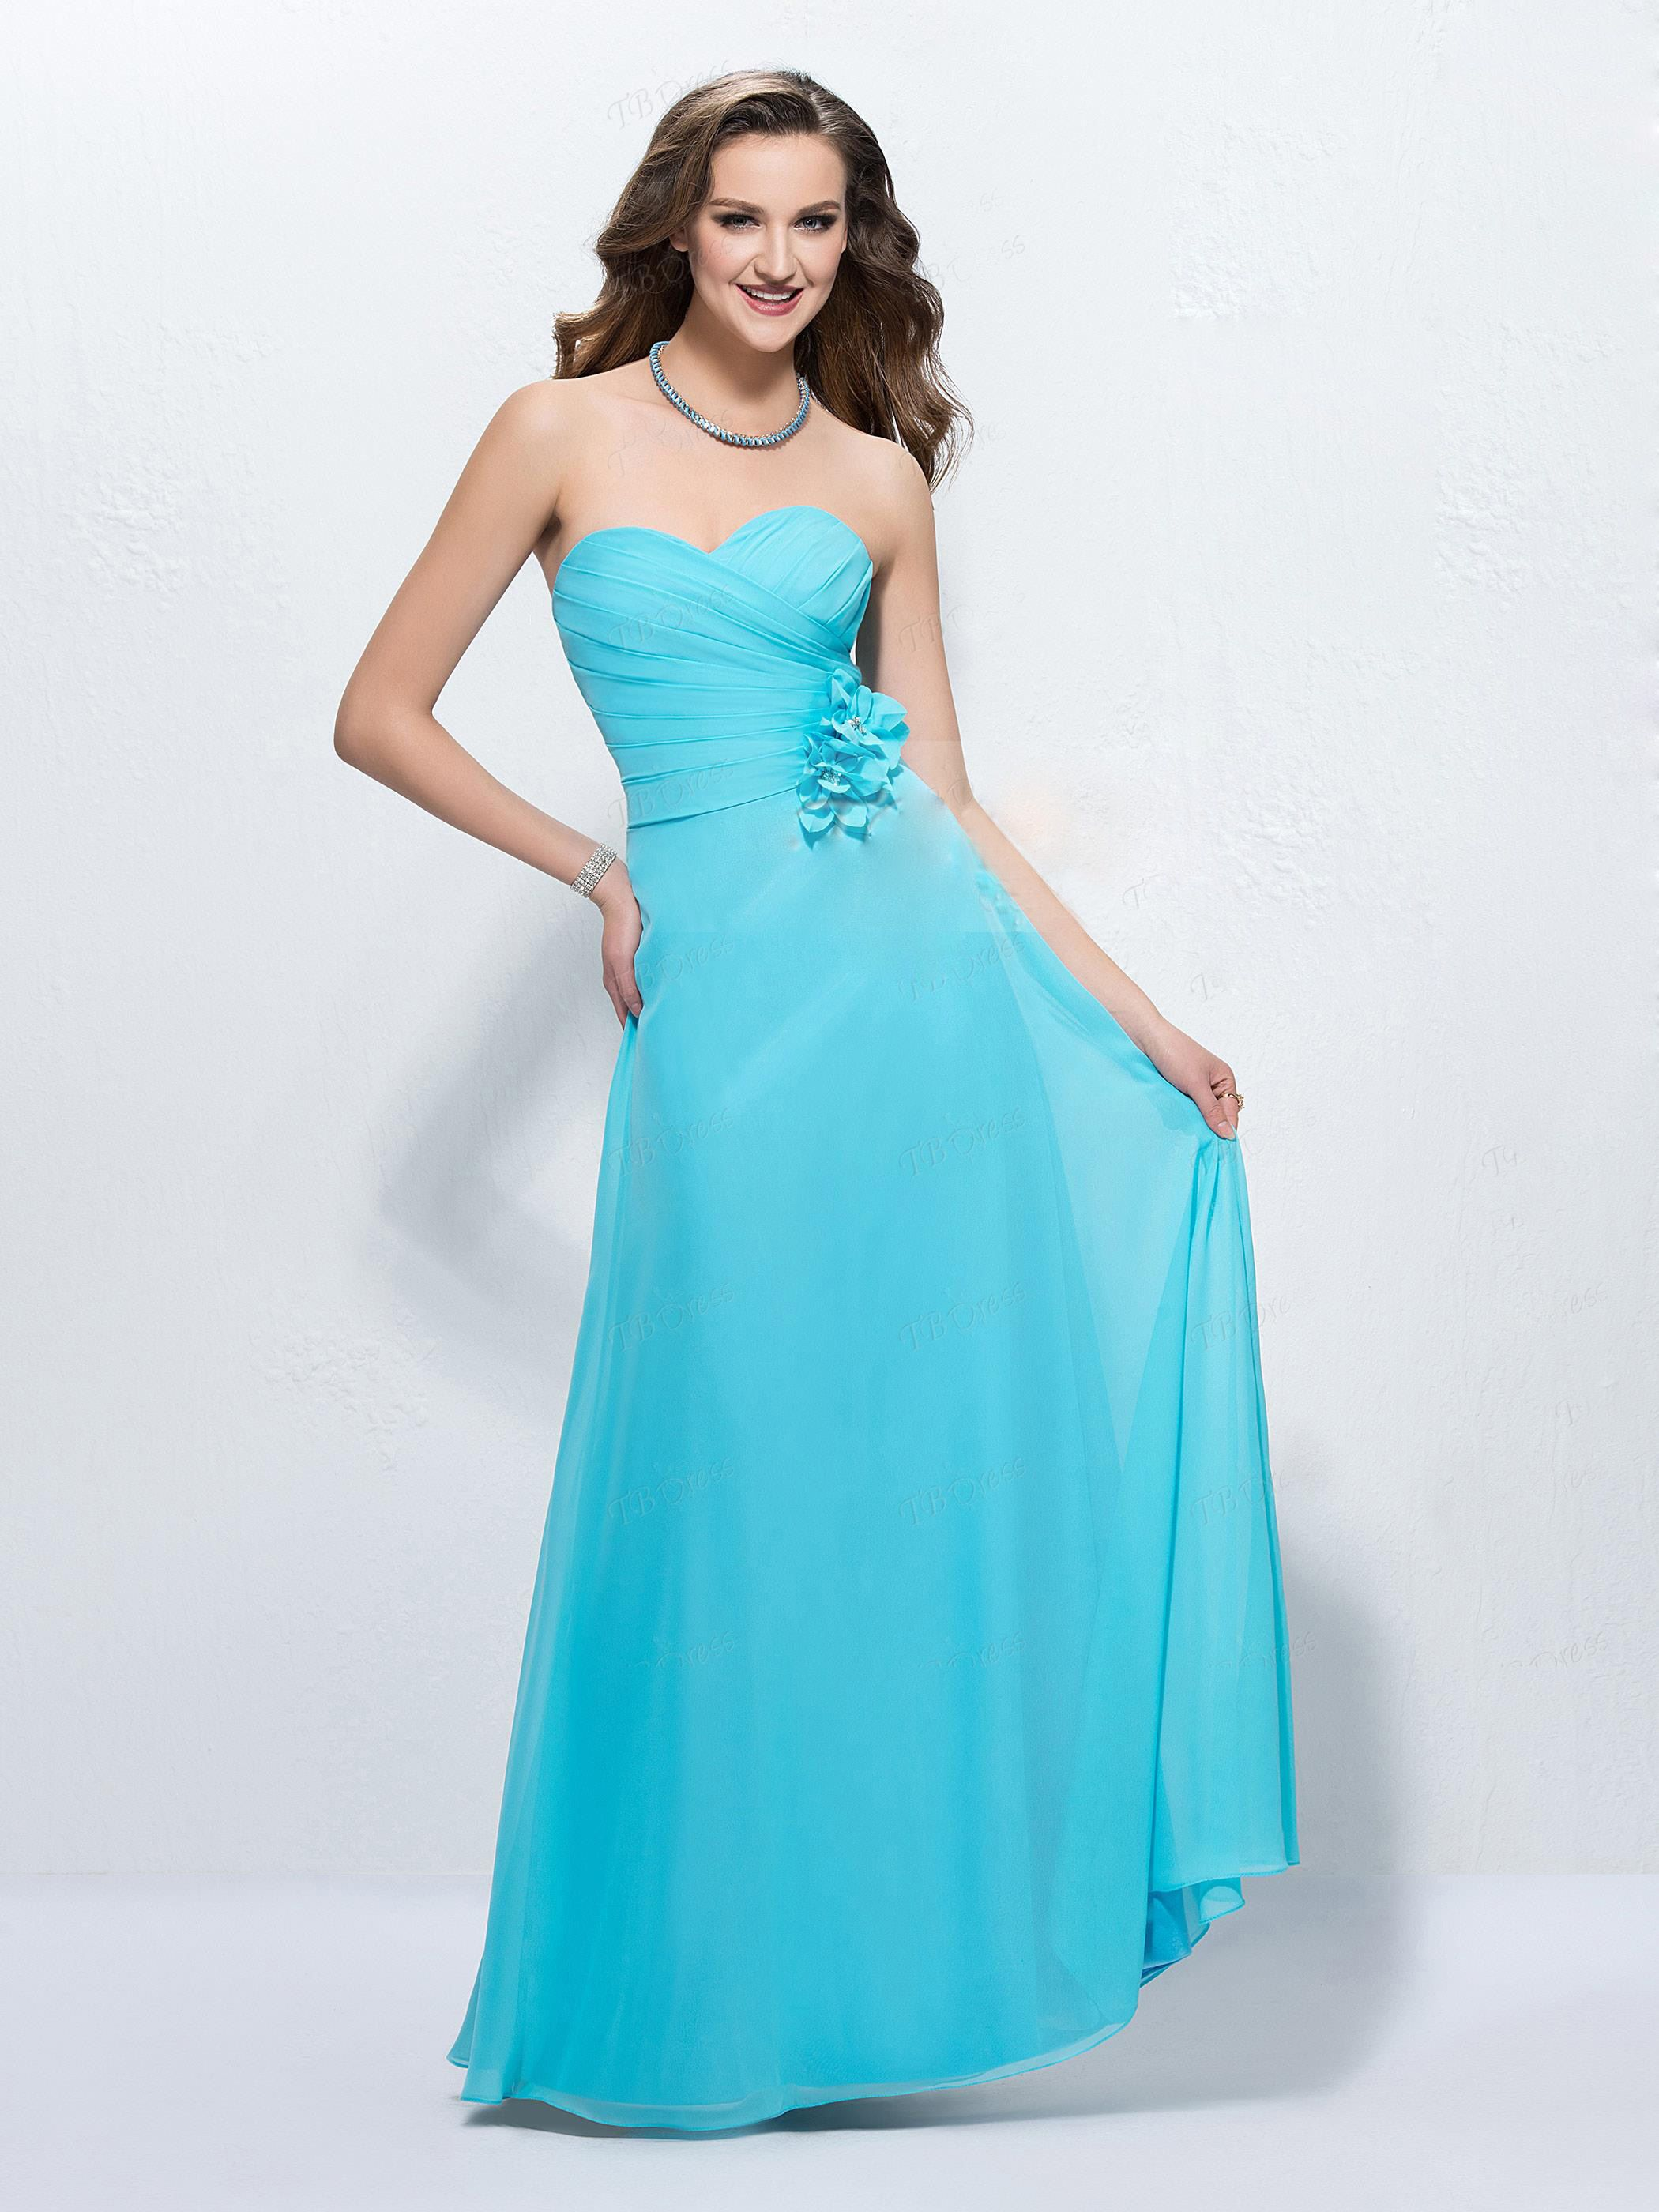 Delighted Department Stores That Sell Prom Dresses Gallery Wedding